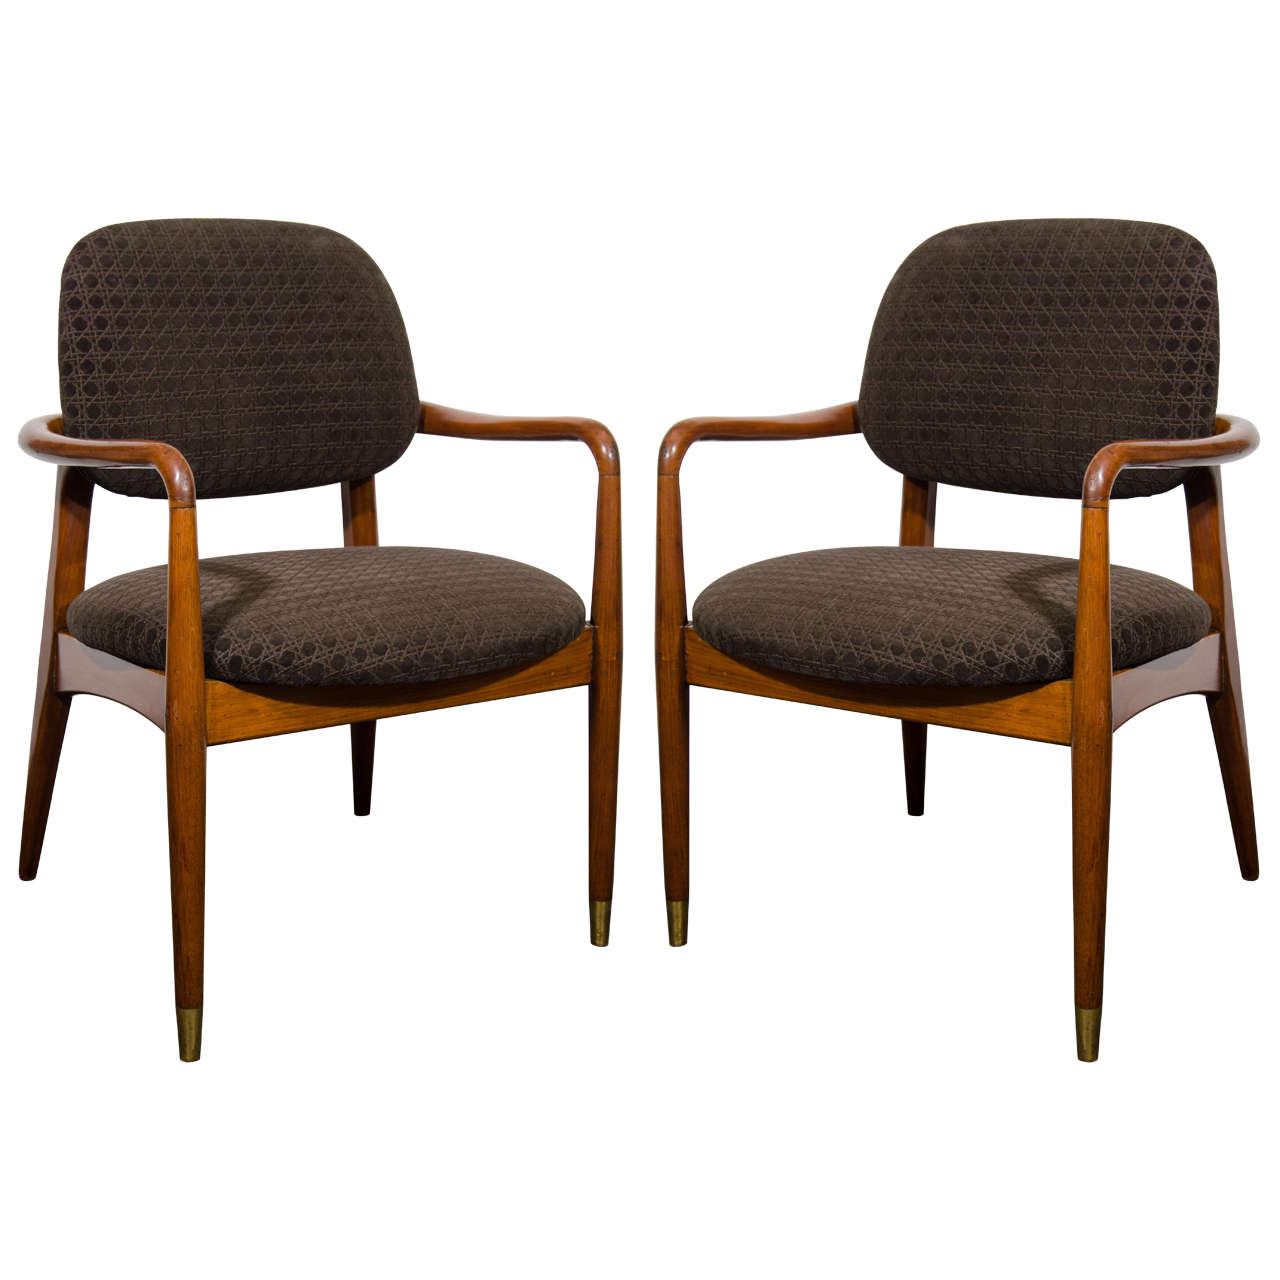 Midcentury Pair of Rosewood Open Armchairs with Tapered Legs